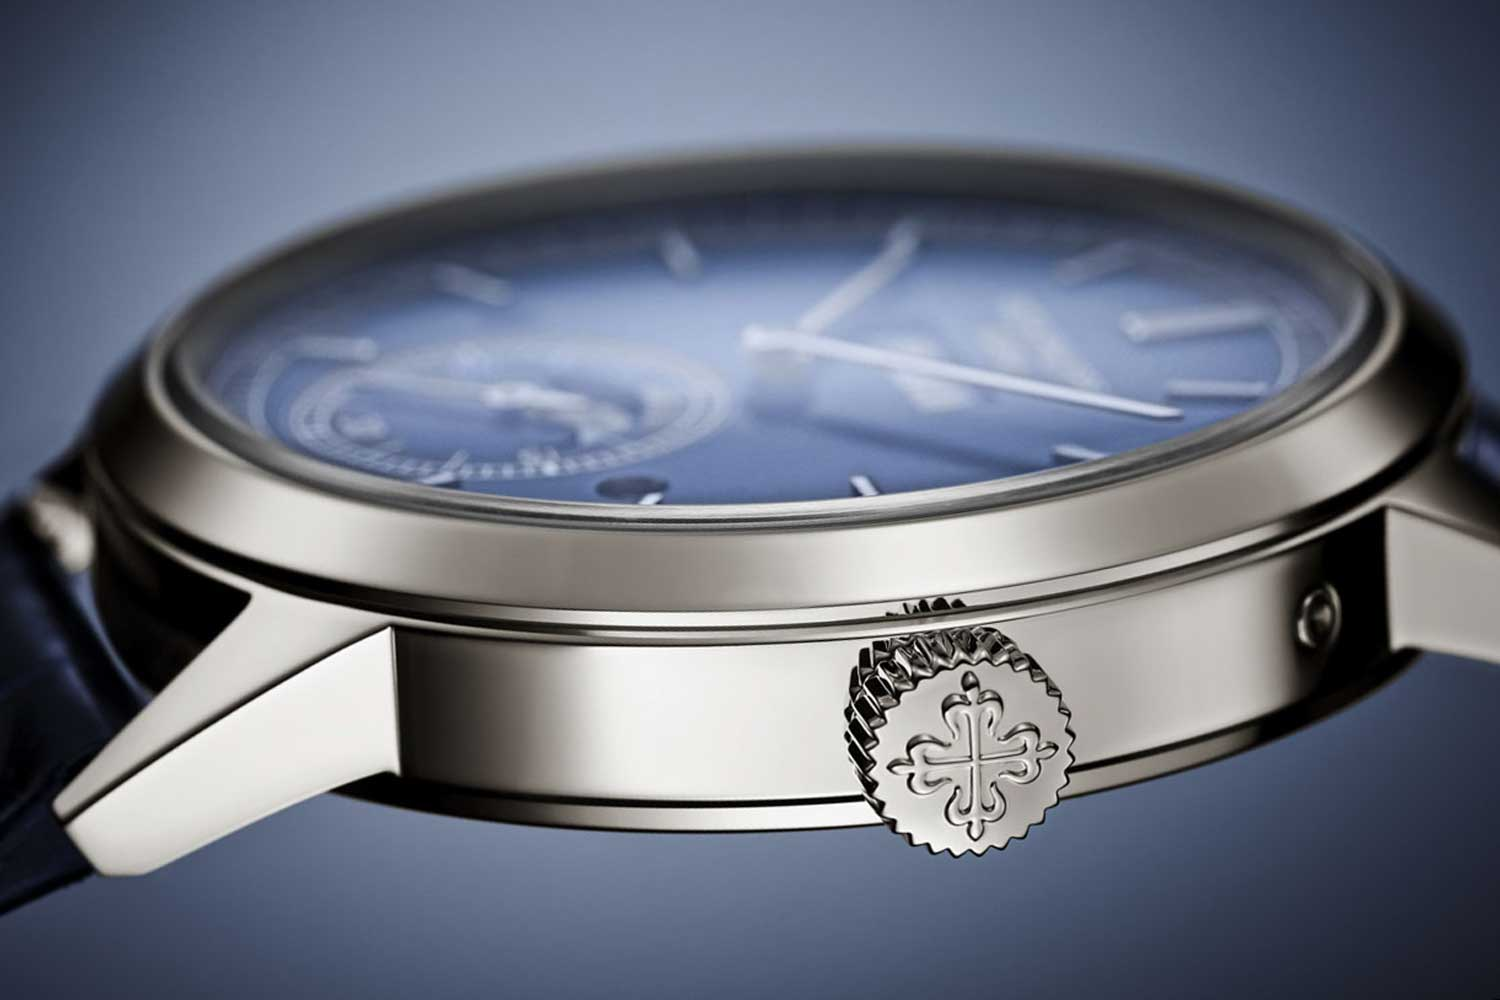 The shape of the case in reference 5236 is round and UFO-like, and it even features the same style of bezel, as well as the unmistakable short angular lugs of the reference 3448.